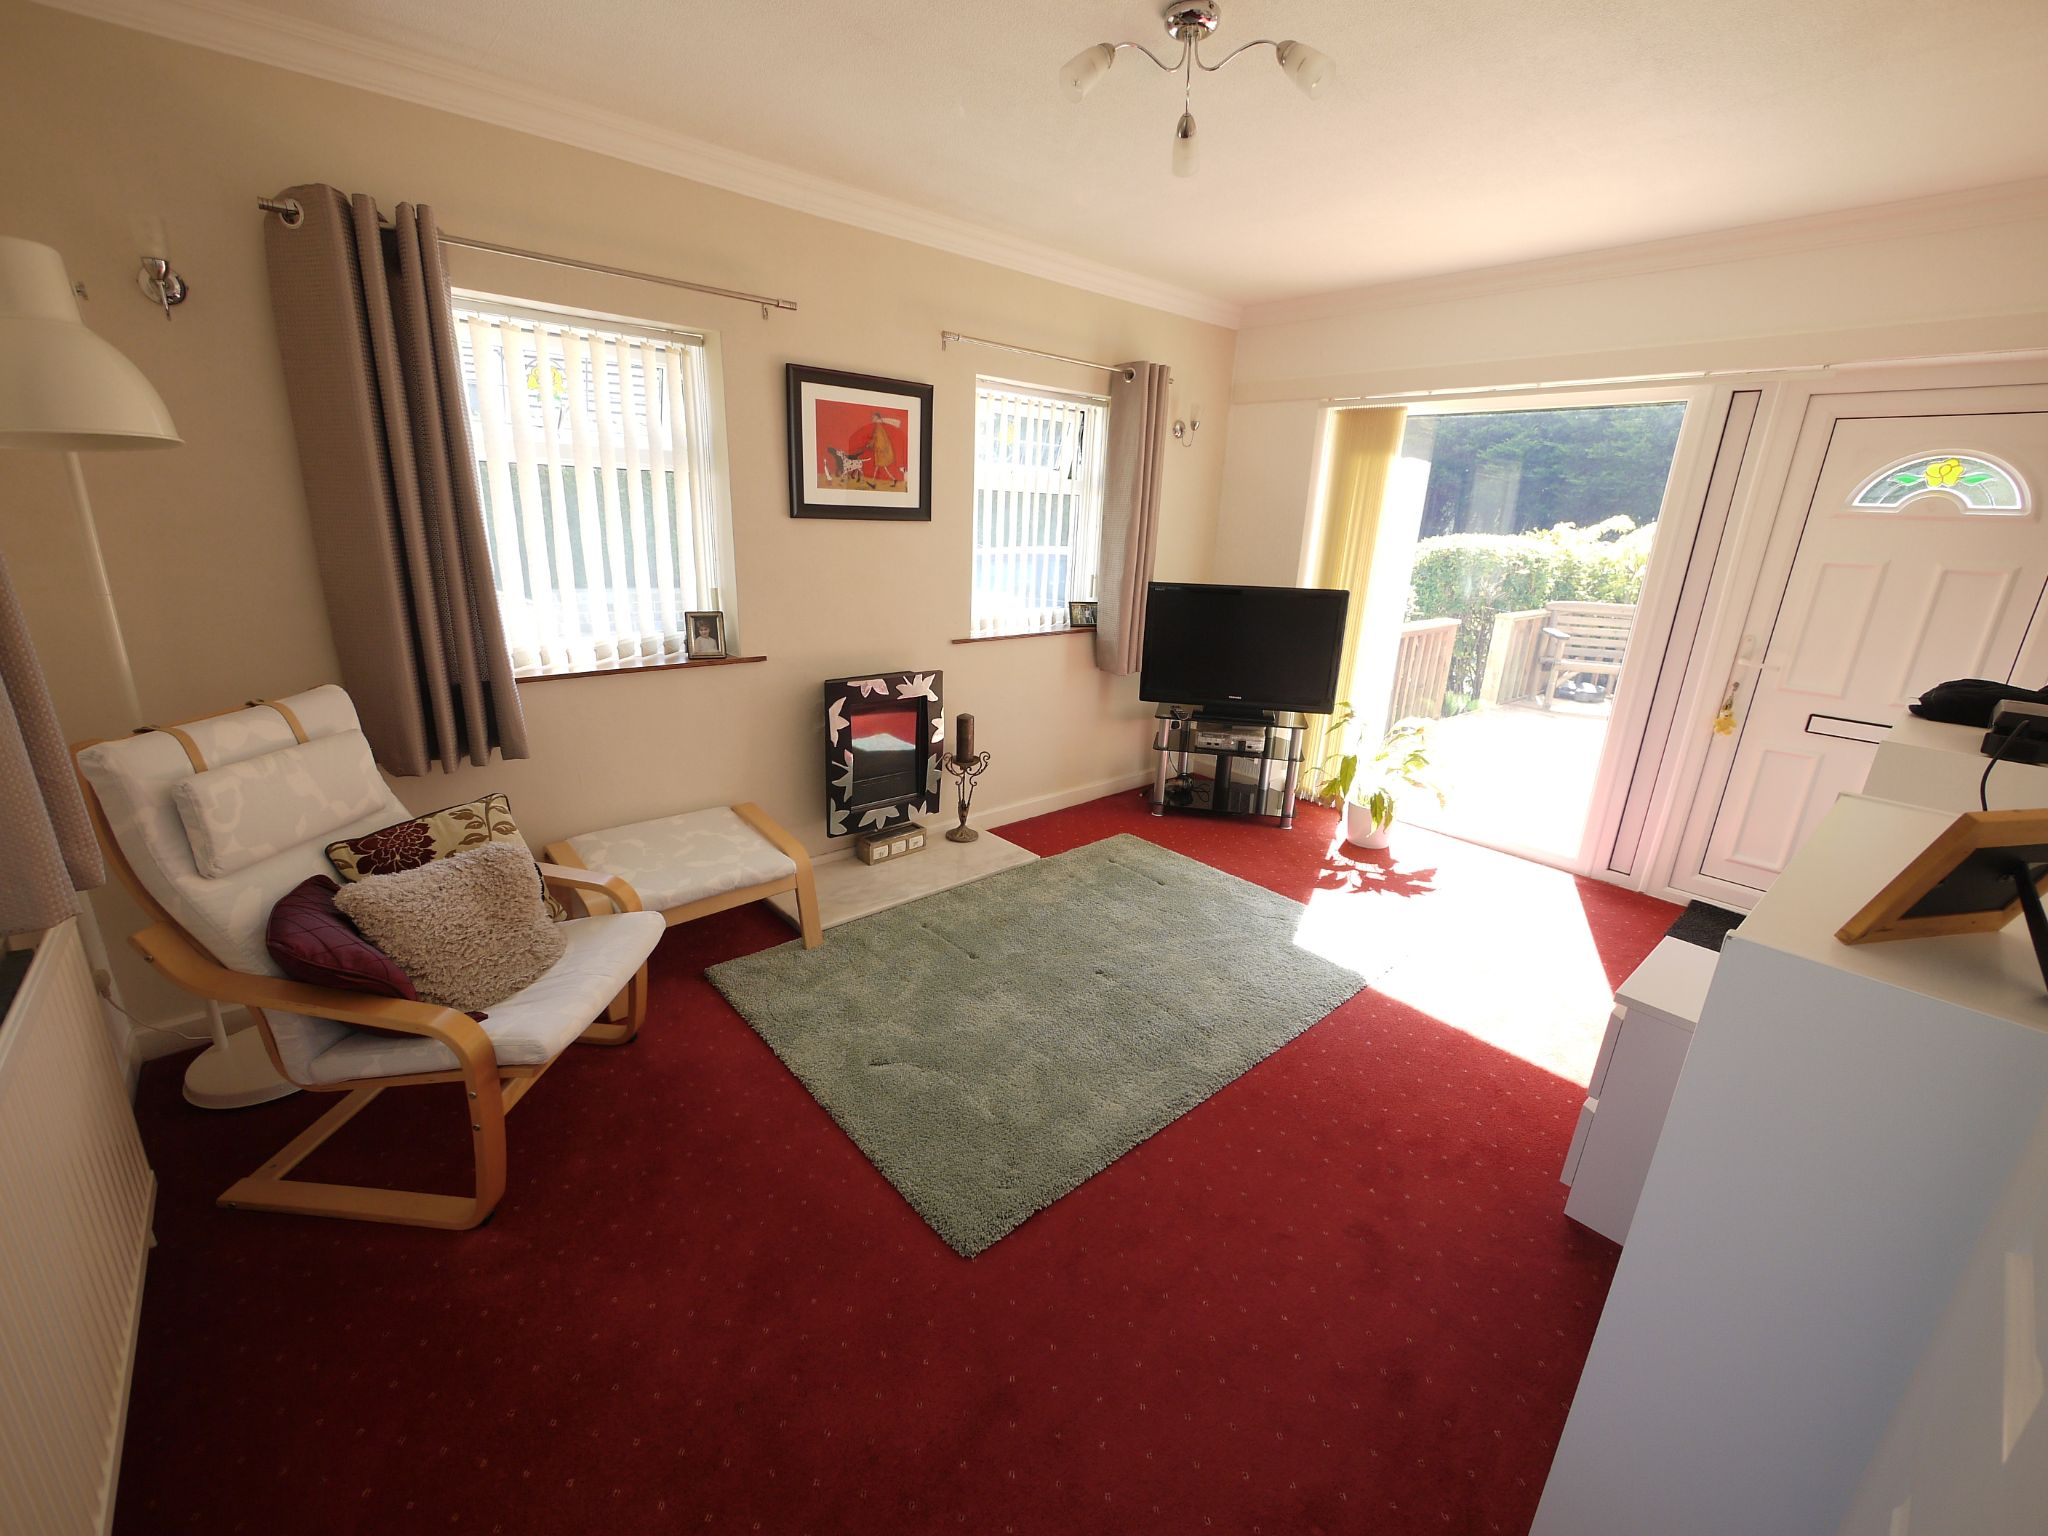 5 bedroom detached house SSTC in Brighouse - Annex lounge.